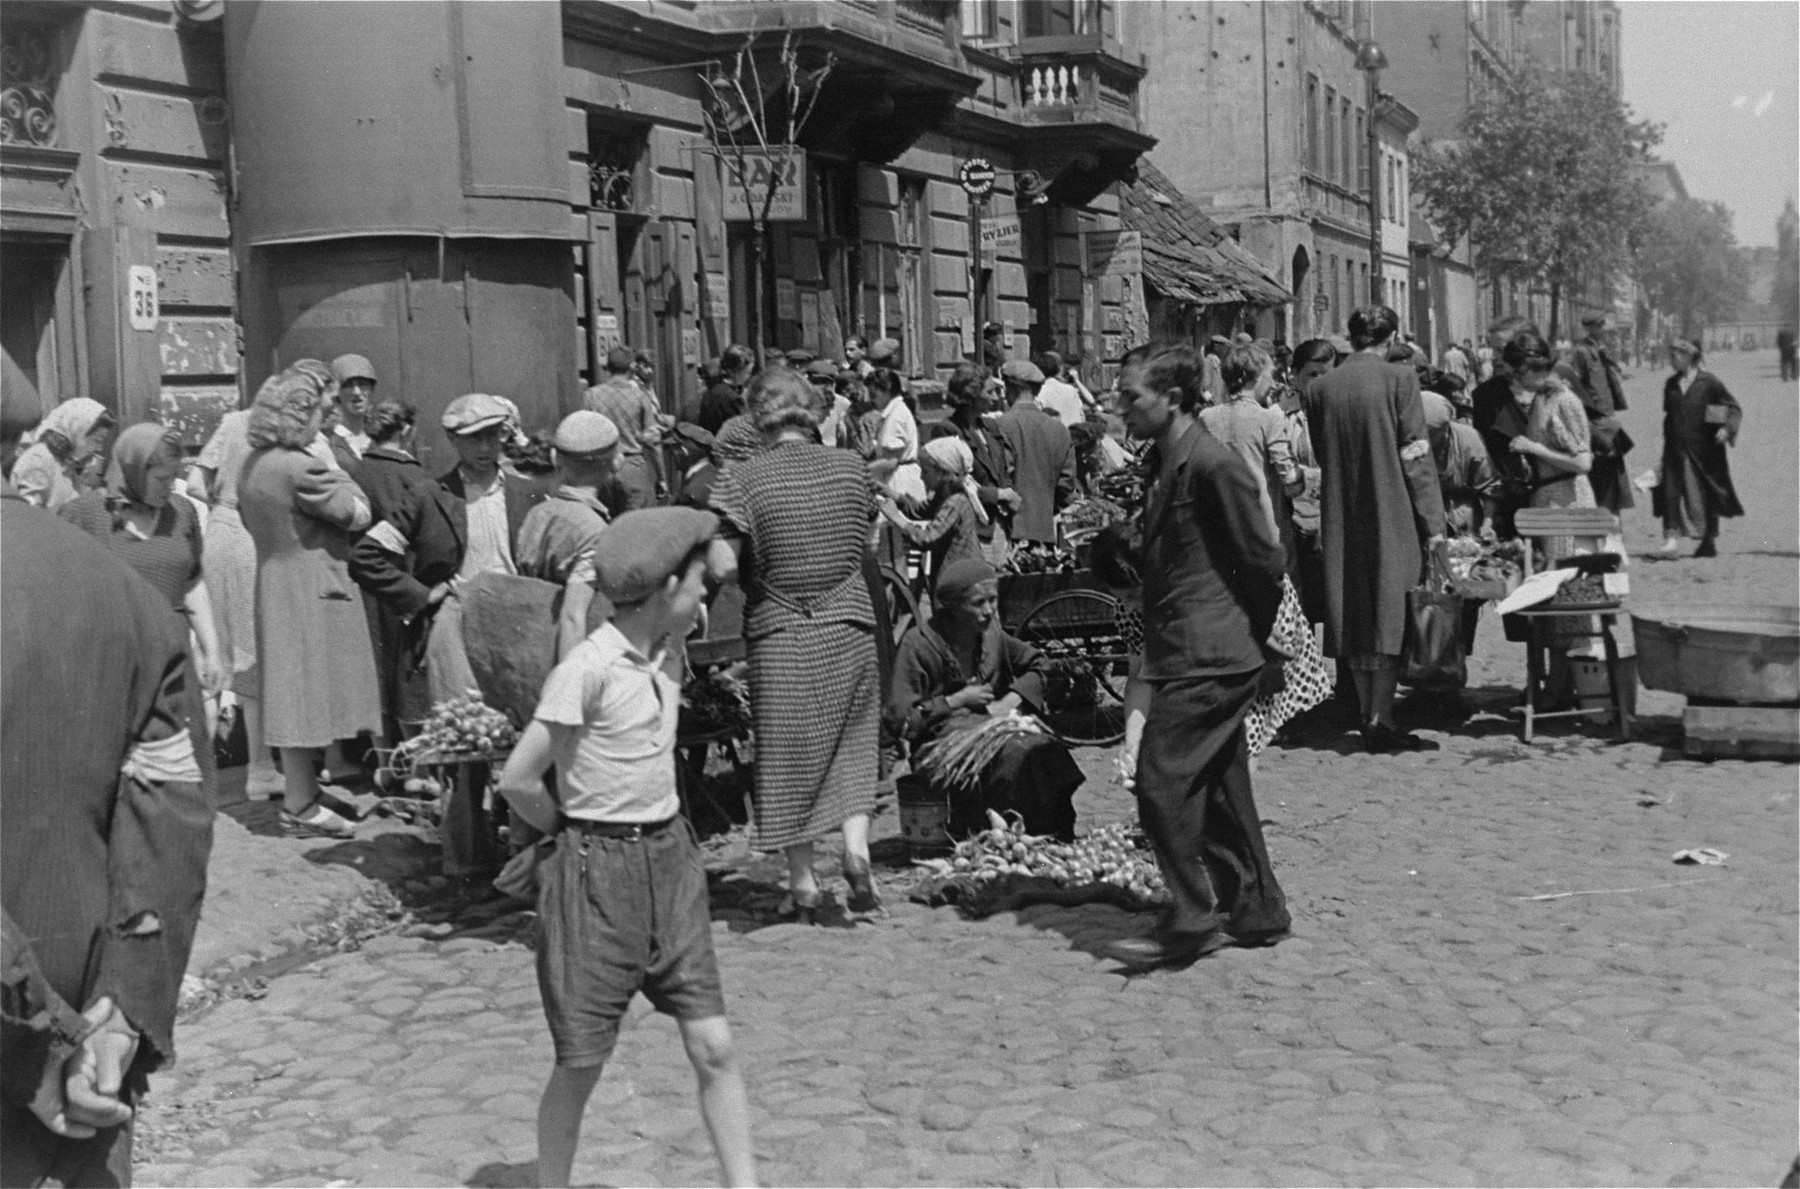 Jews purchase produce from street vendors in the Warsaw ghetto.